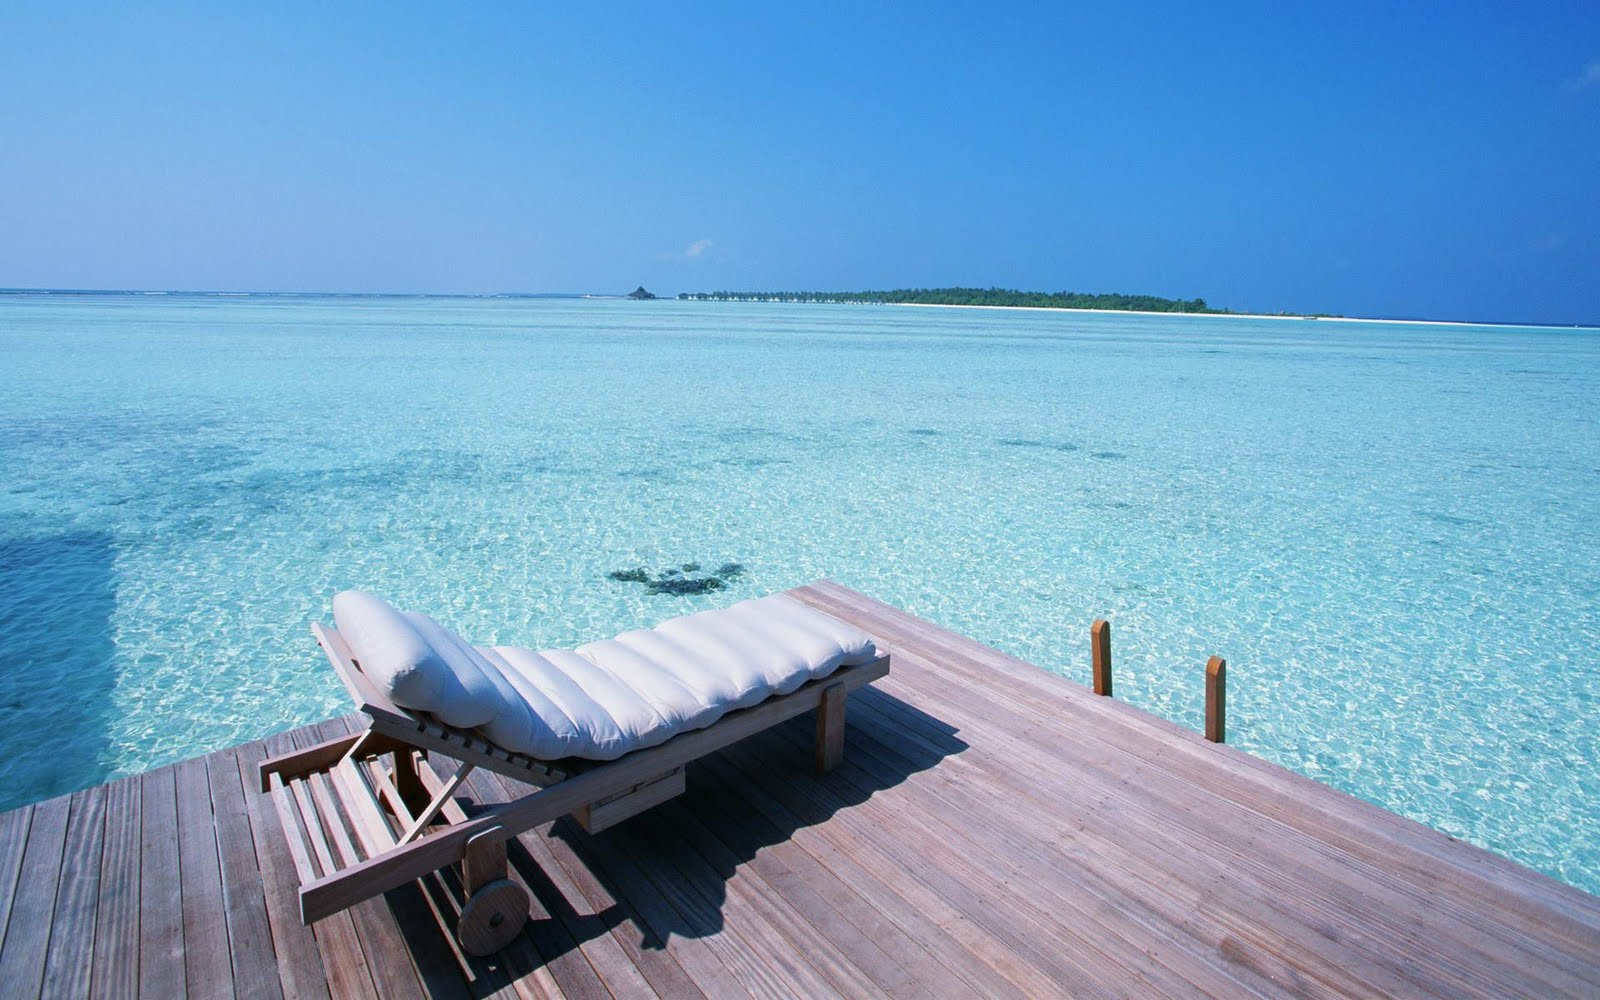 Maldives Islands - Holiday Pictures